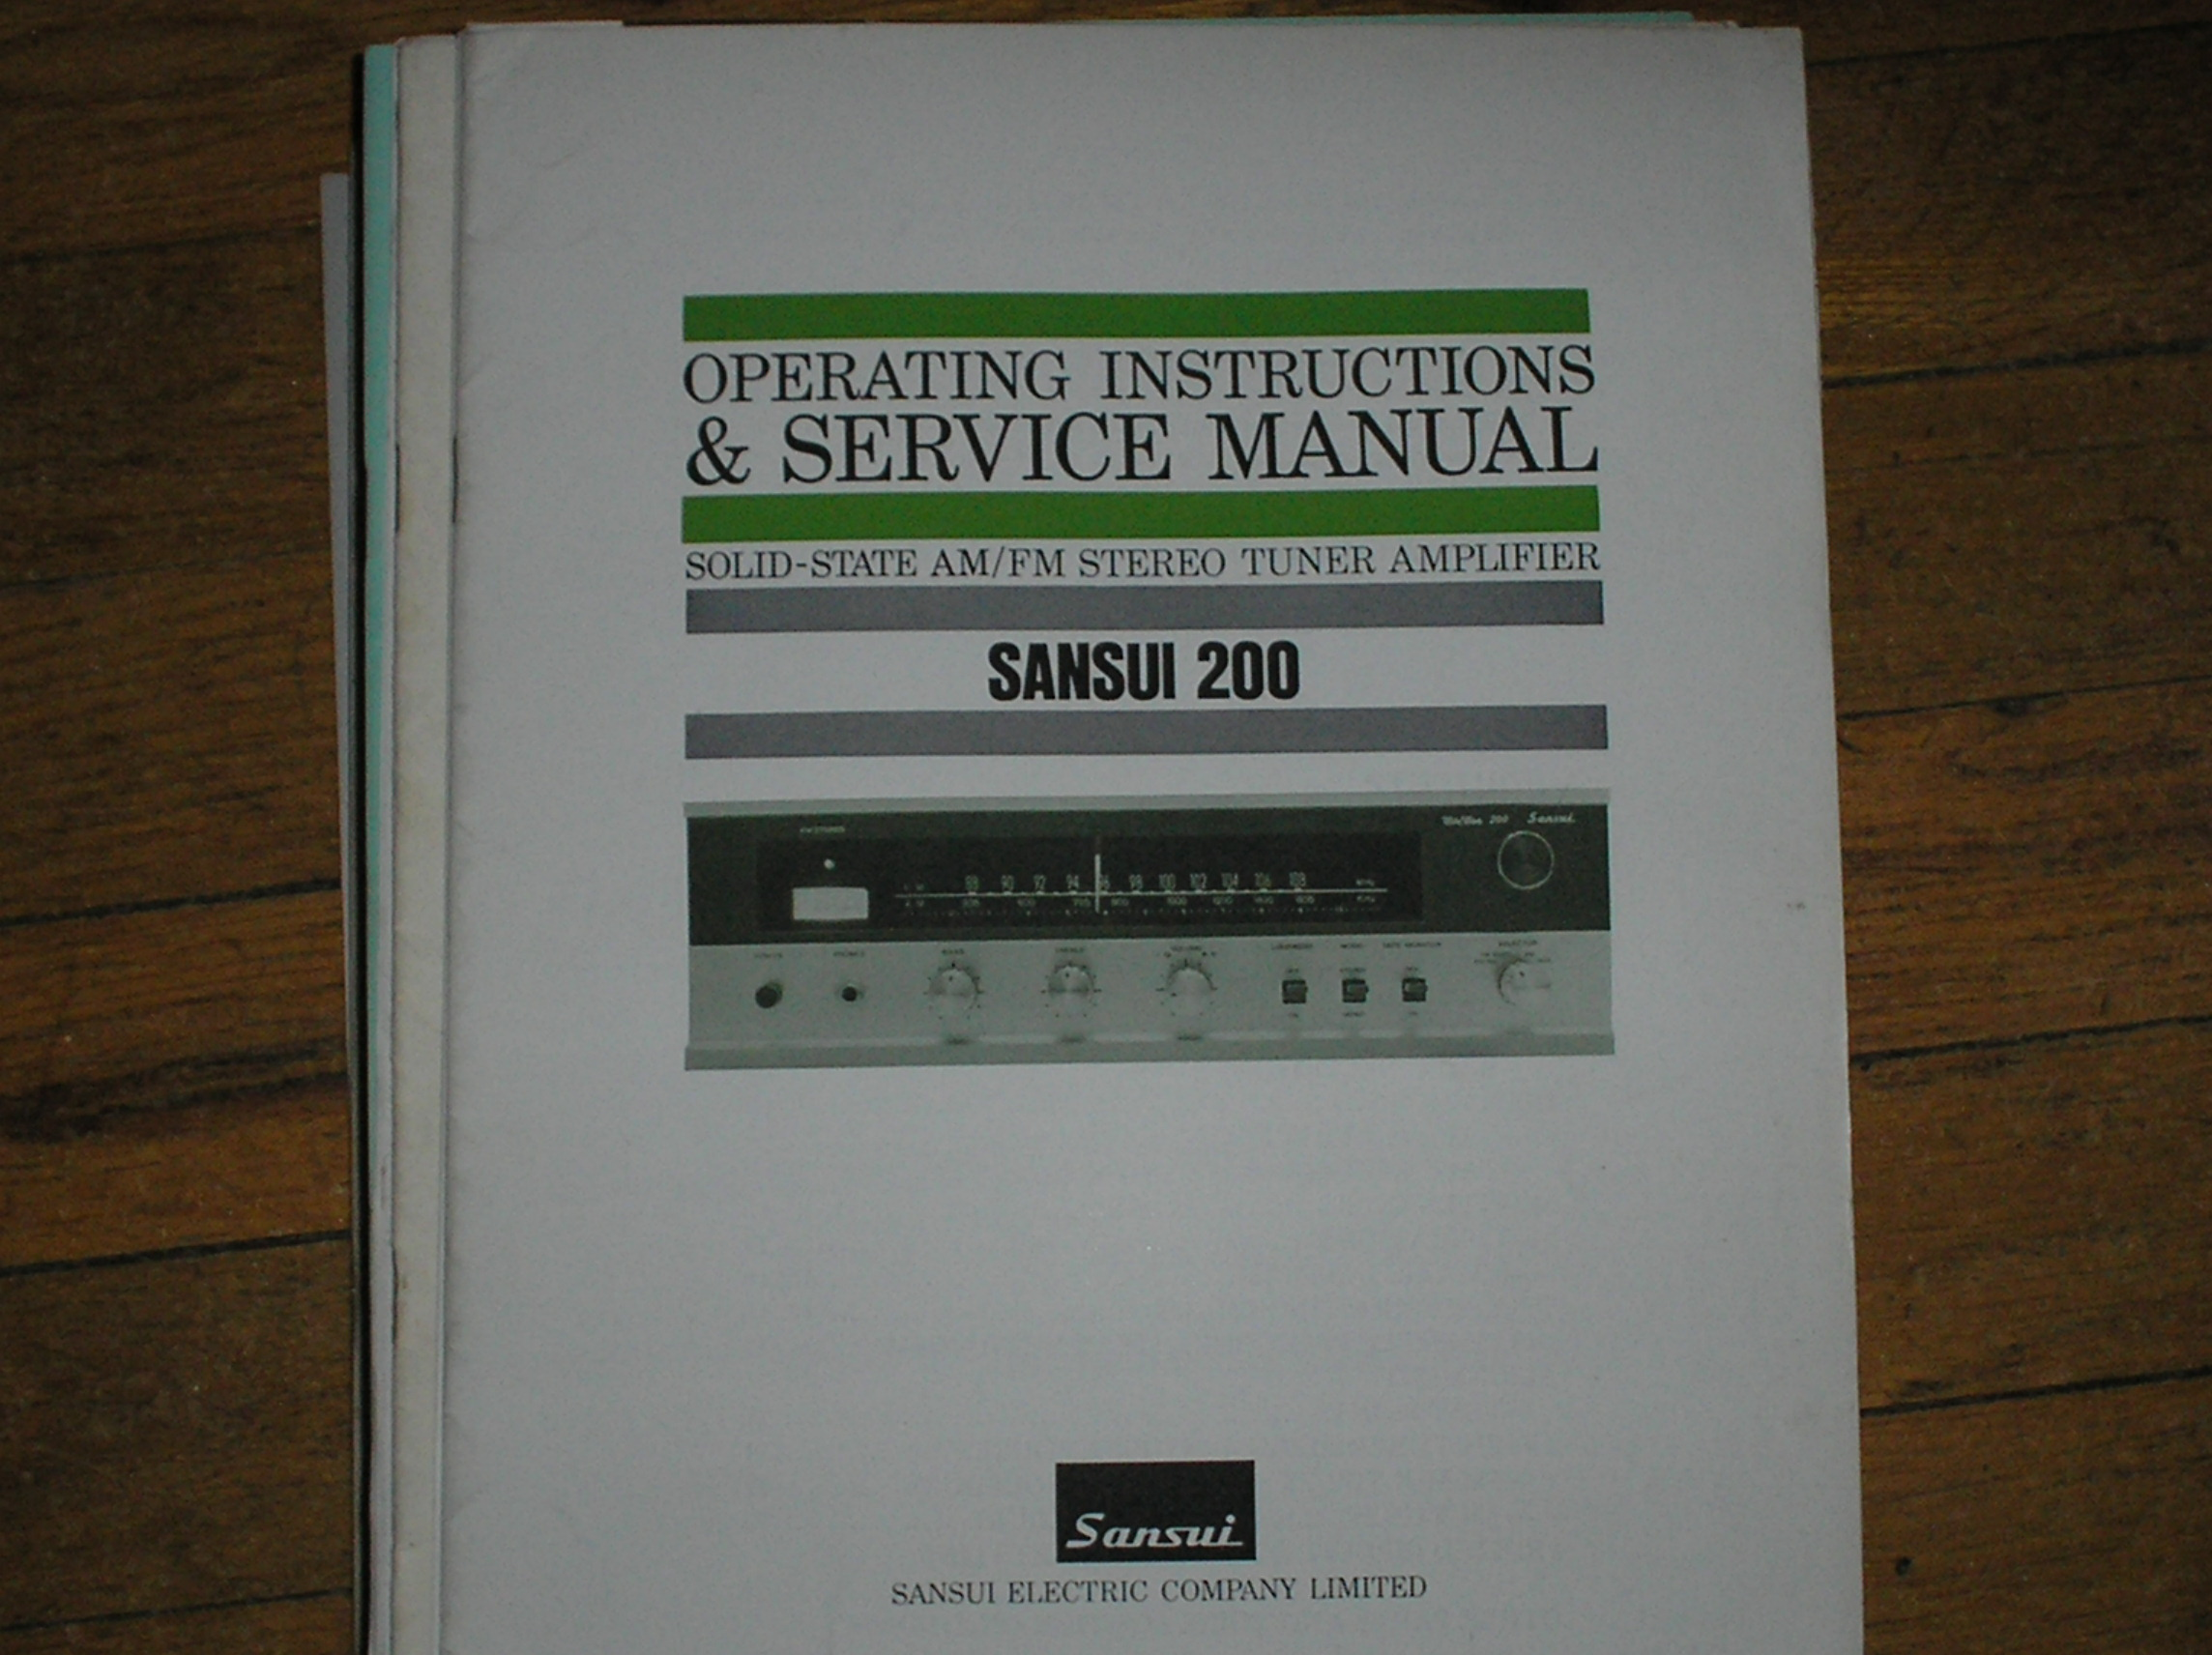 200 Tuner Amplifier Instruction Manual